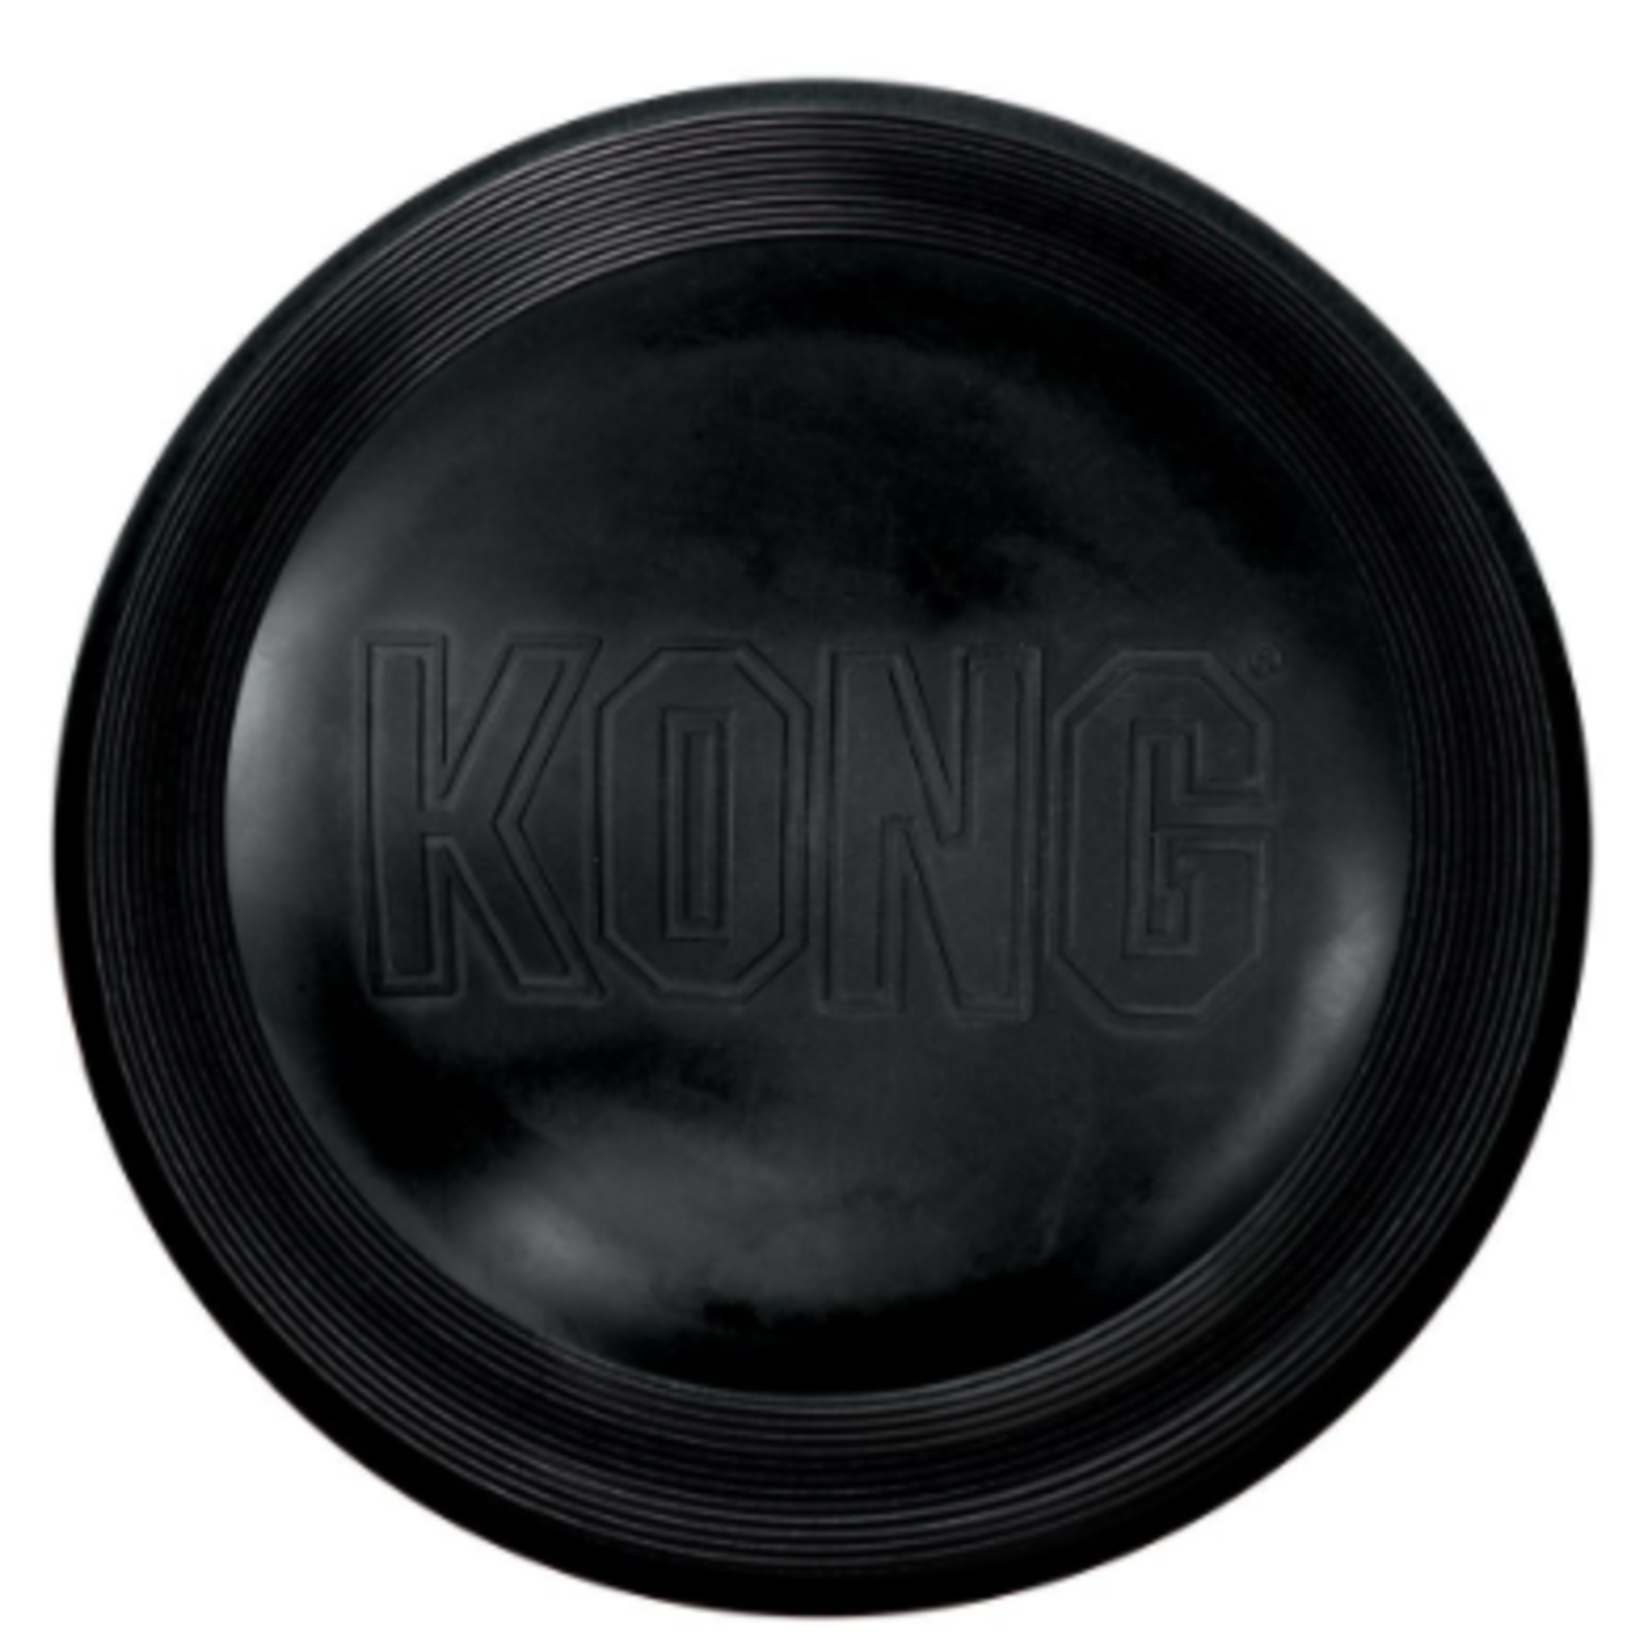 Kong Large Dog Durable Rubber Flying Disc